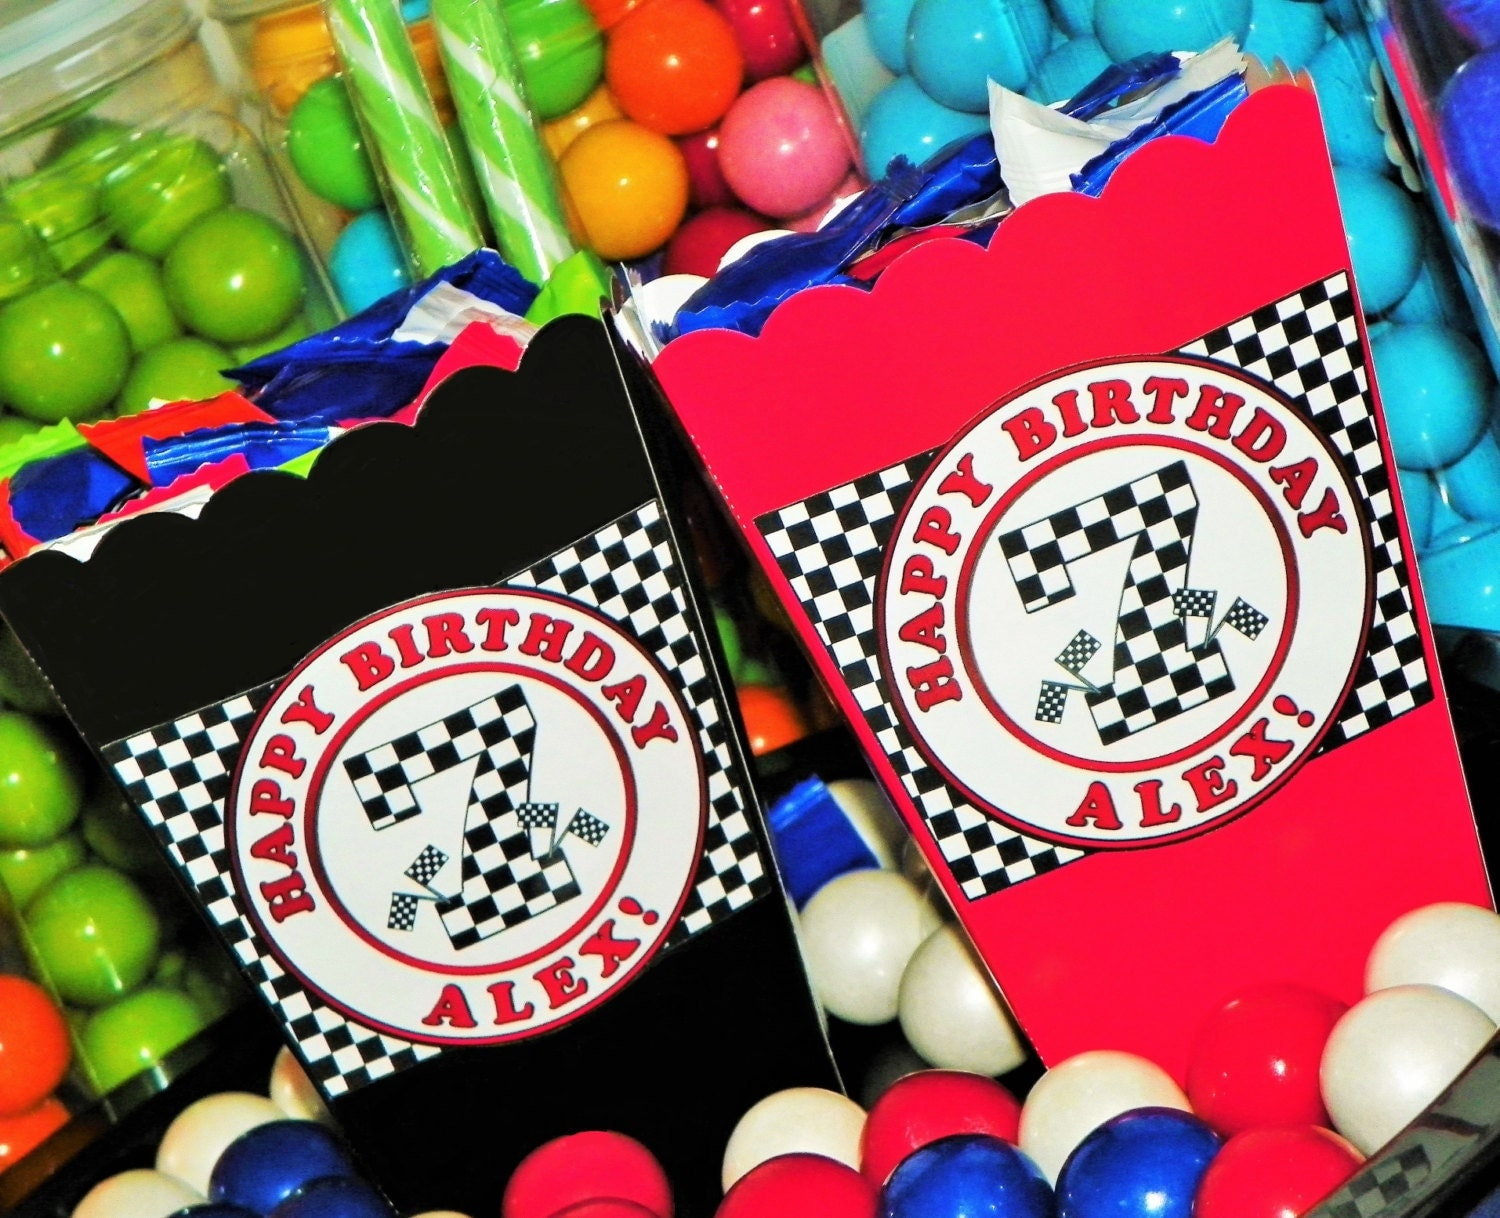 Race Car Birthday Party: Kids Race Car Themed Party Mini Popcorn Boxes. Race Car Snack